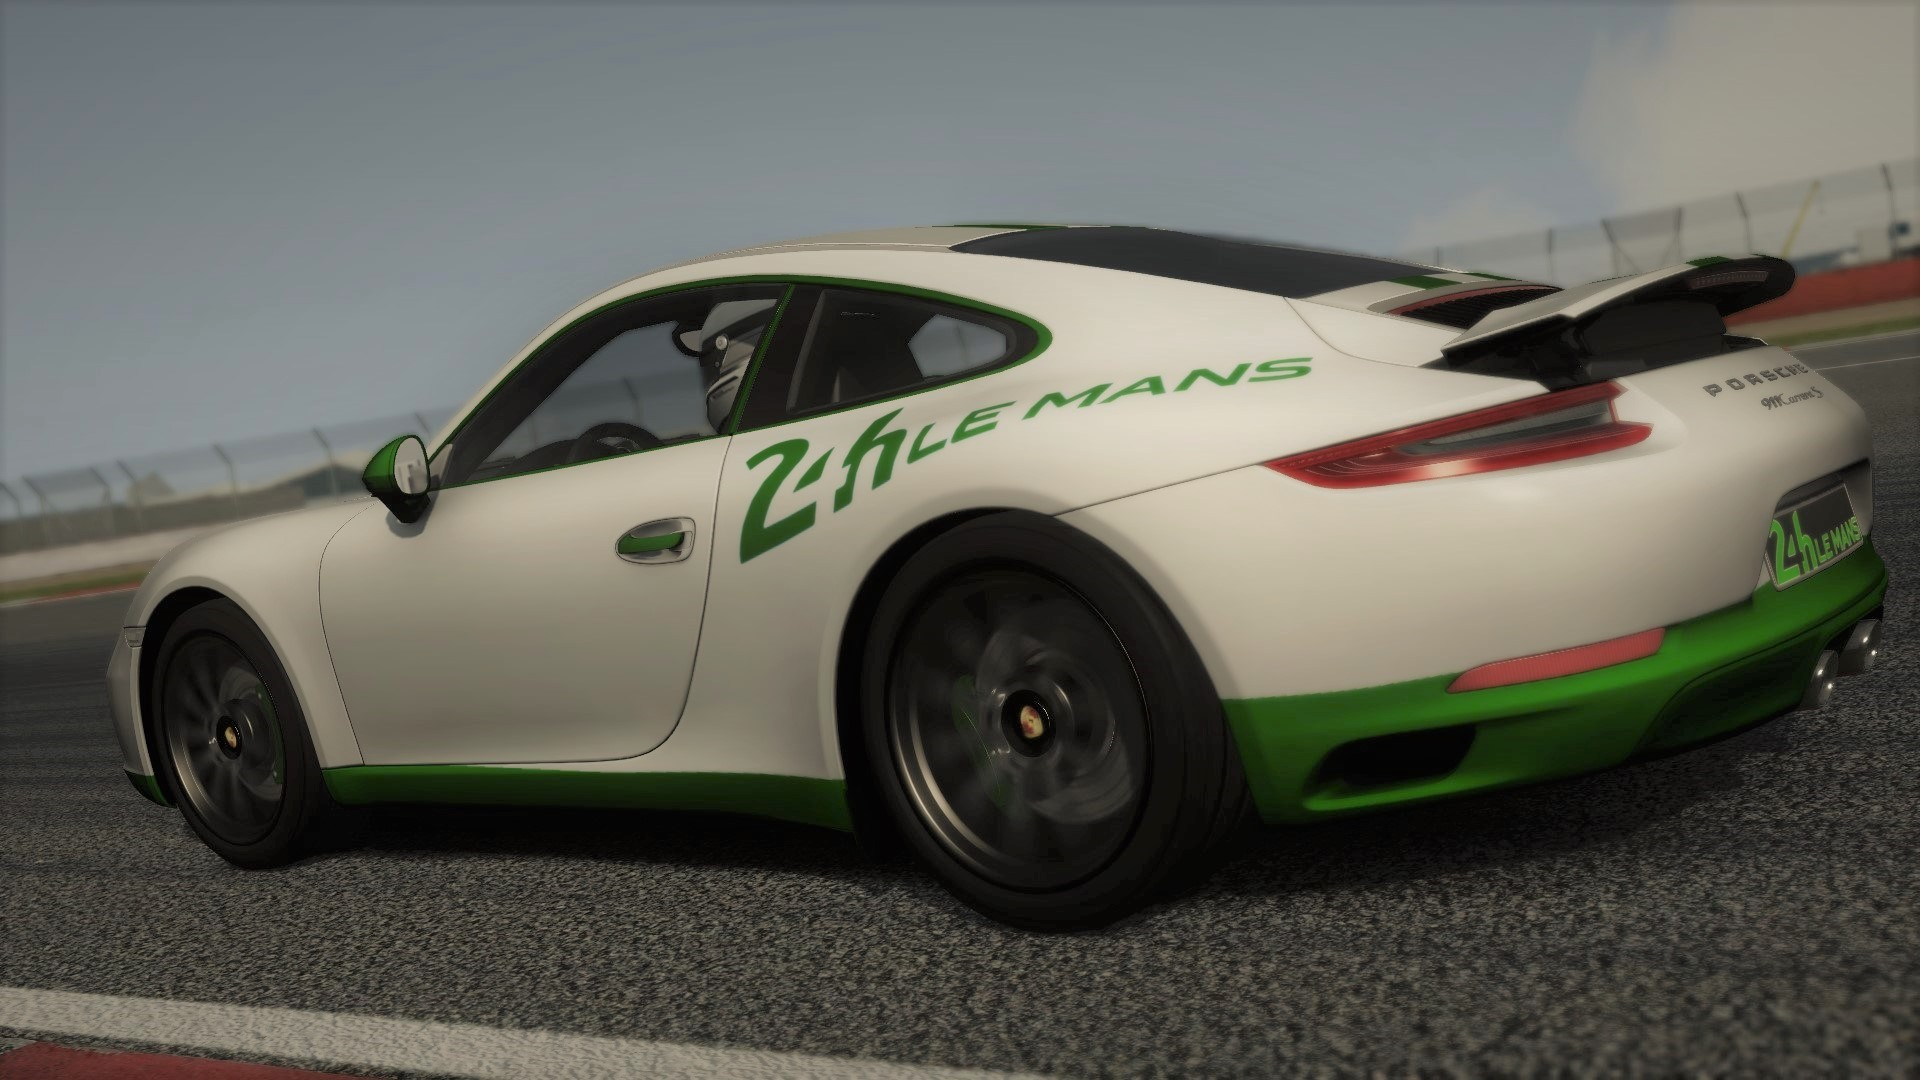 Screenshot_ks_porsche_991_carrera_s_ks_silverstone_9-12-116-13-34-17.jpg